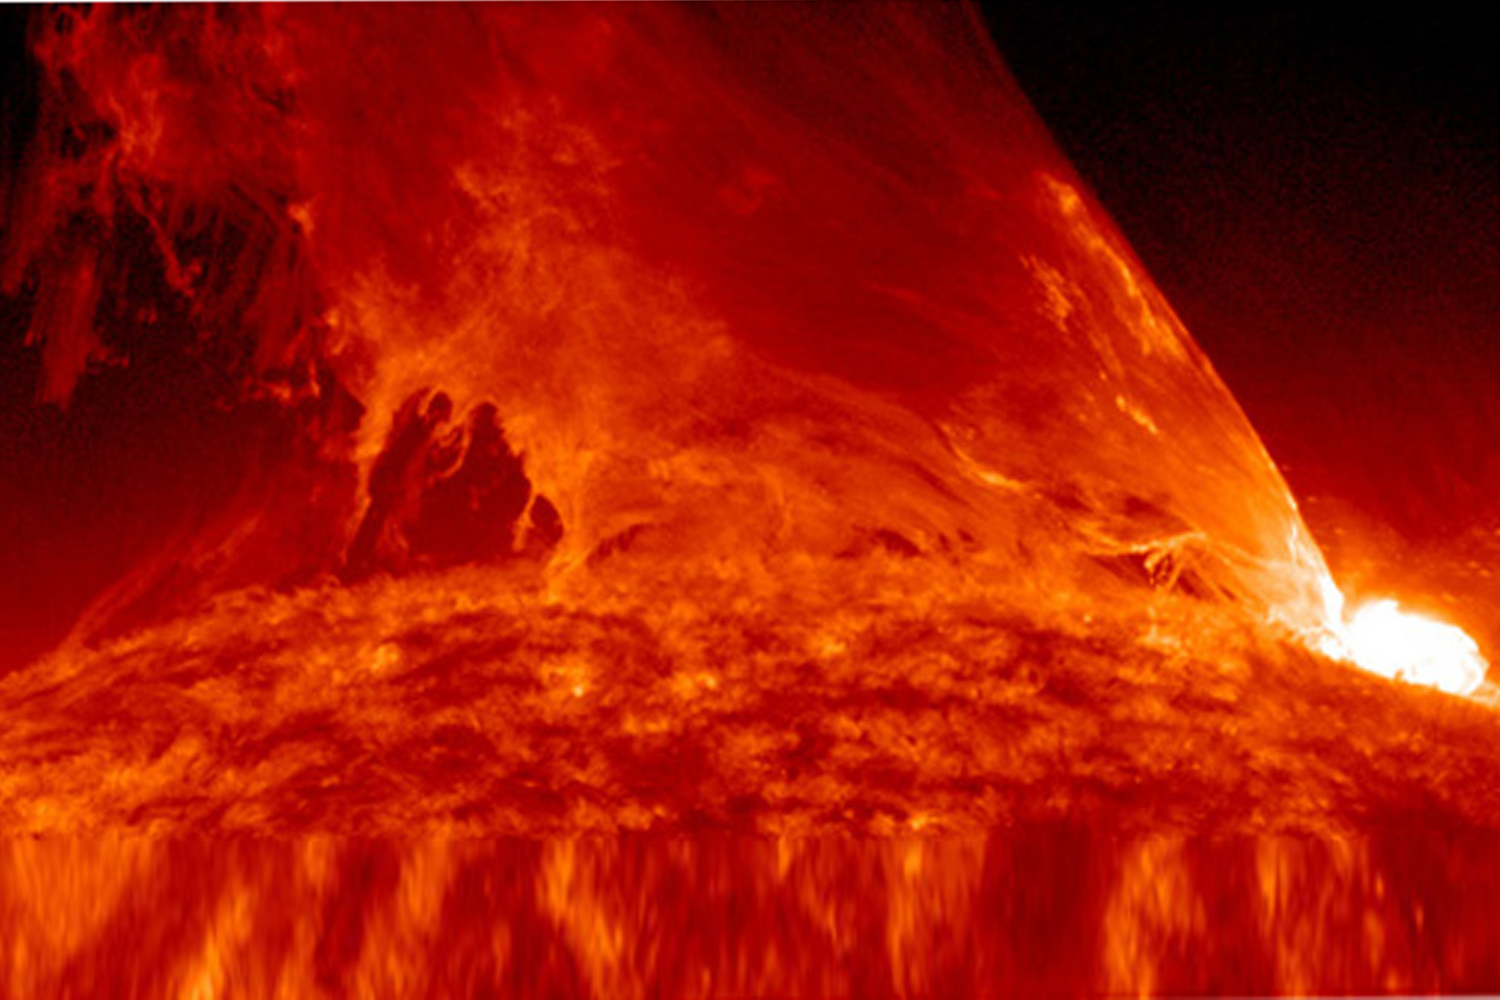 solar storm meaning - photo #2